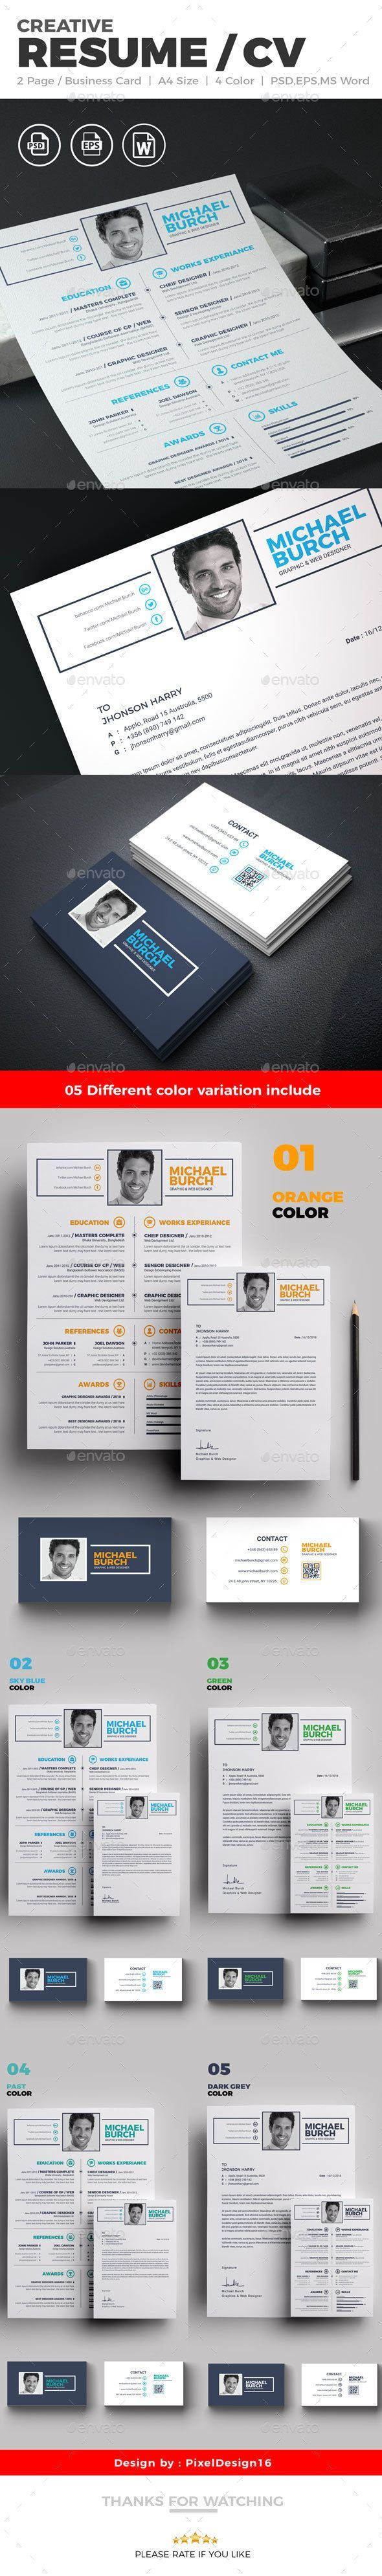 """Resume / CV Resume / CV """" Resume """" is a super clean, modern and professional resume cv template to help you land that great job. The flexible page designs are easy to use and customise, so you can quickly tailor-make your resume for any opportunity.. Flexible and Editable Resume Design This professional resume file is an Adobe Photoshop, illustrator and MS Word format resume, so you can use the software that you wish to edit the Resume with."""